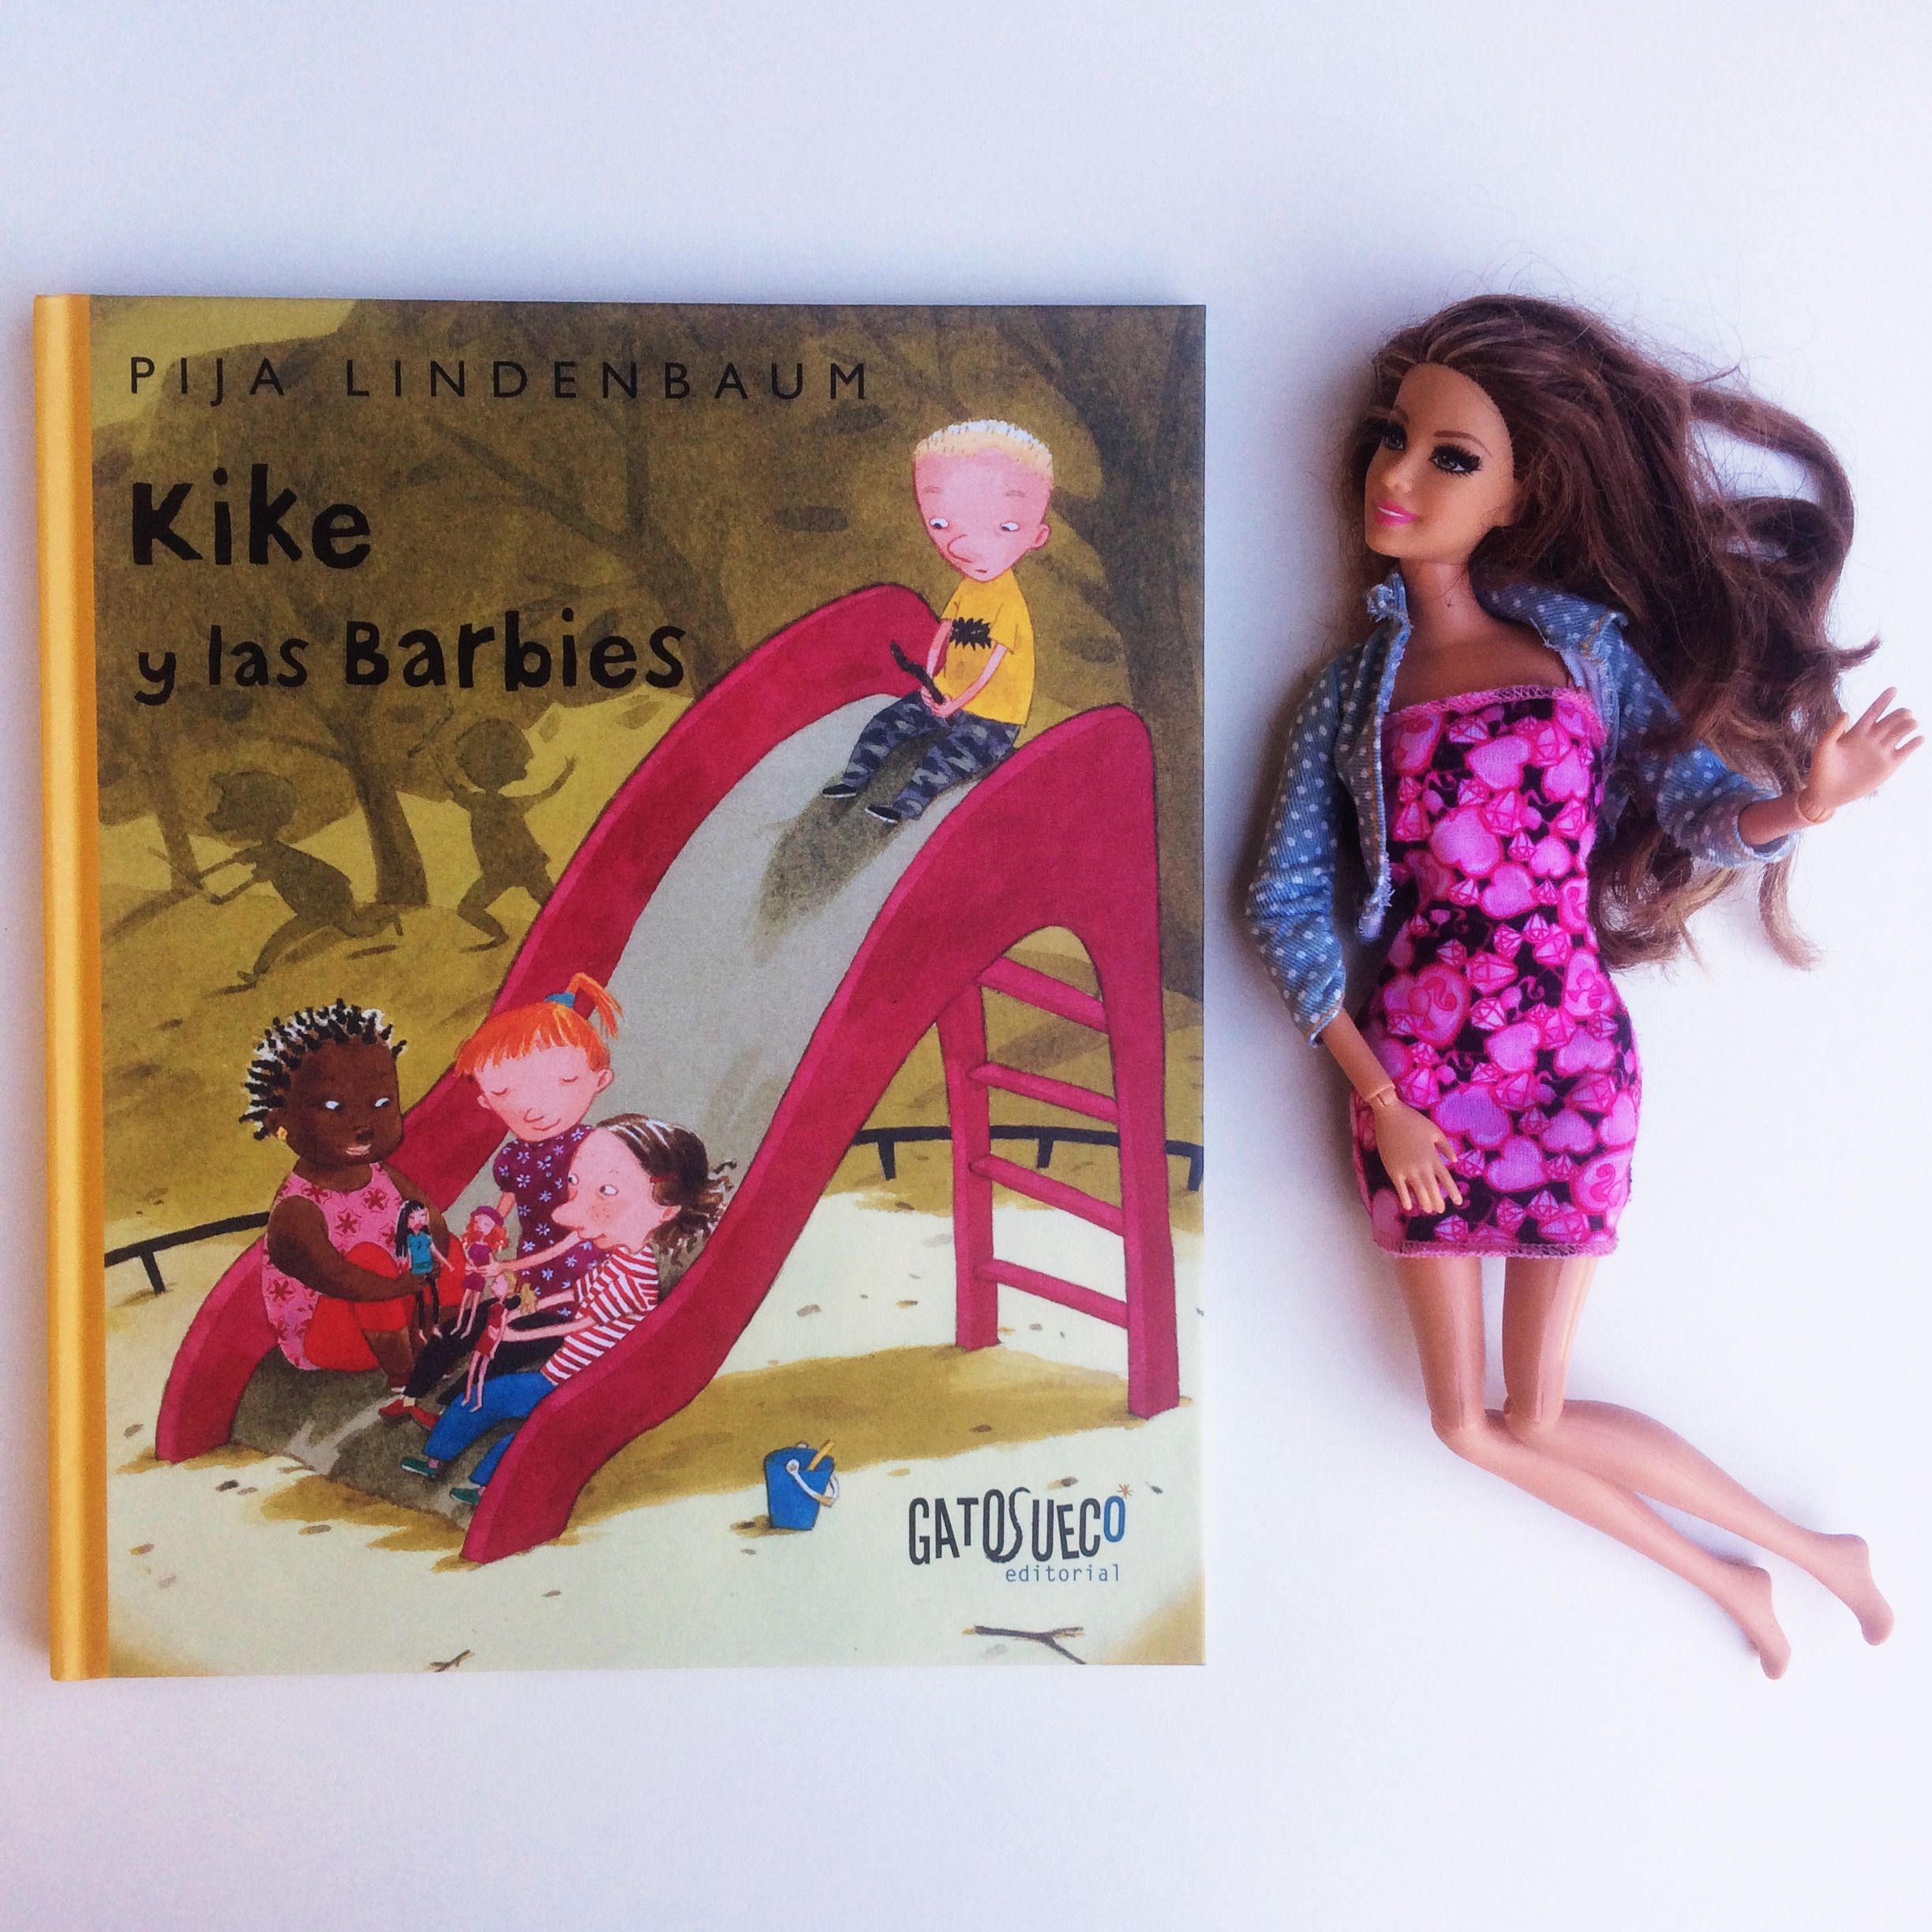 kike y las barbies